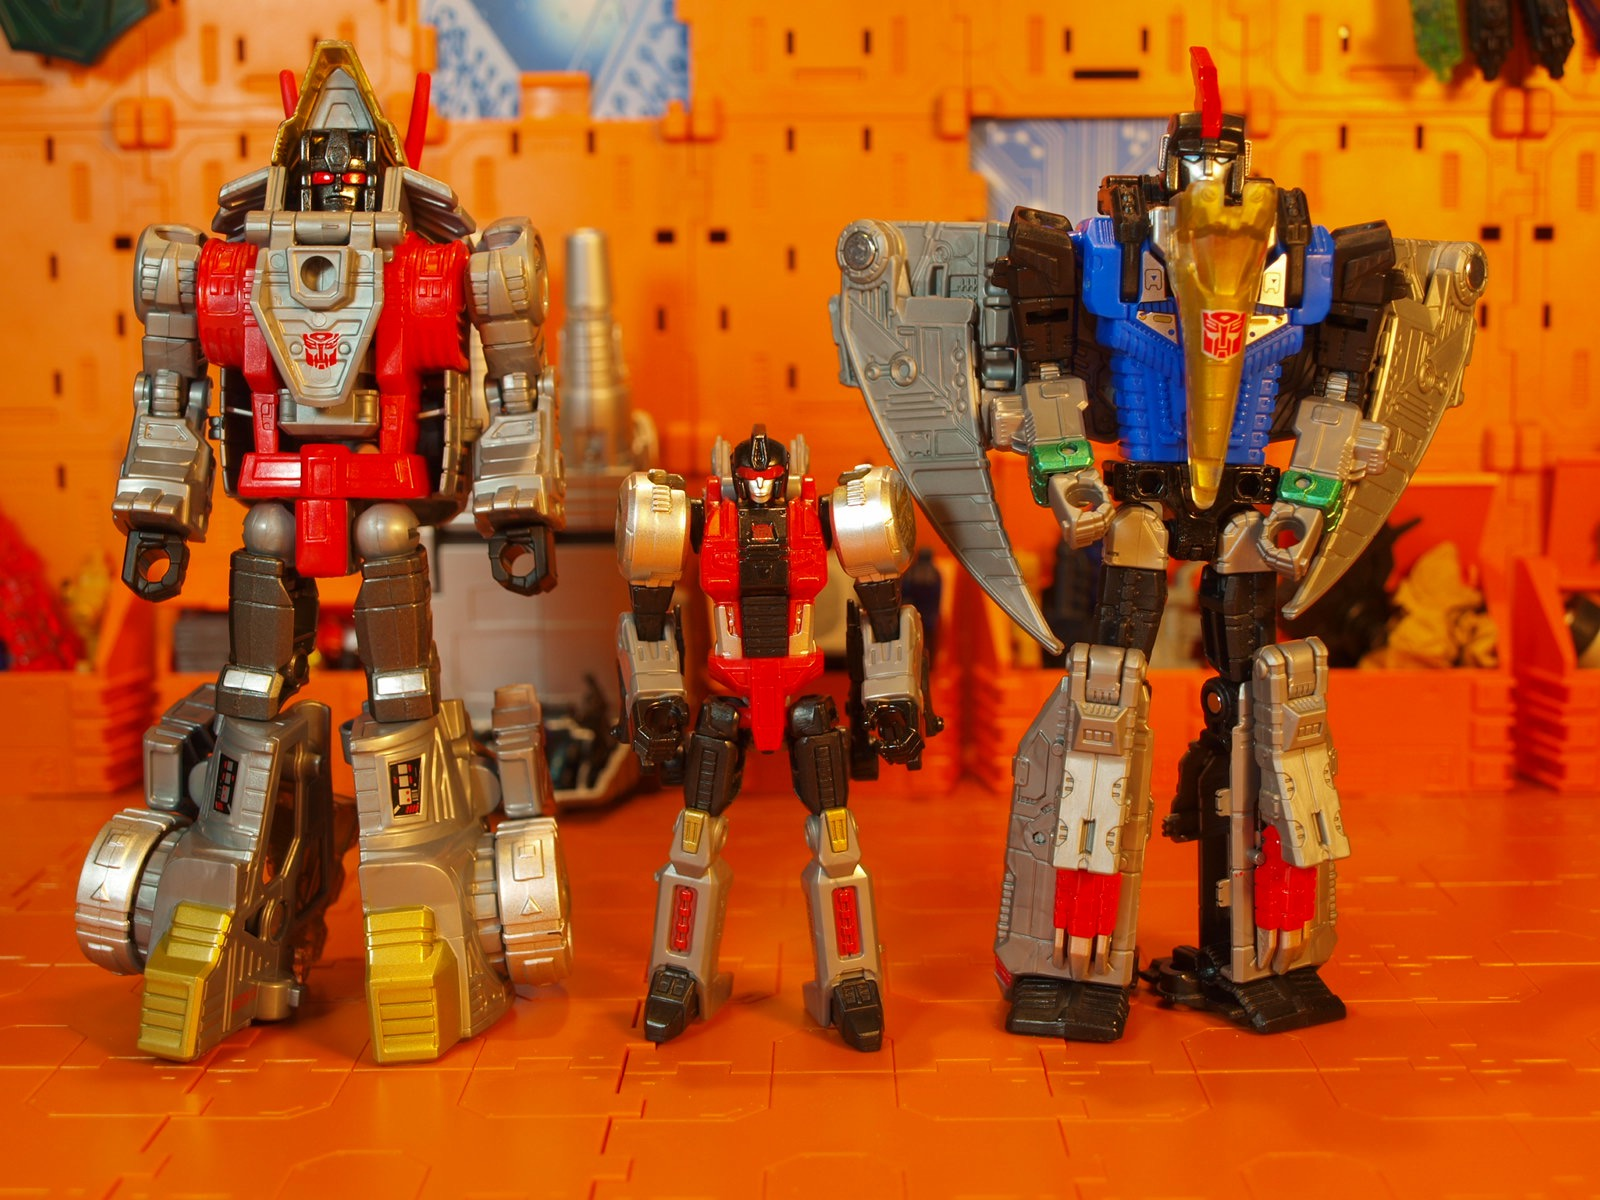 Slash with Dinobots robot mode